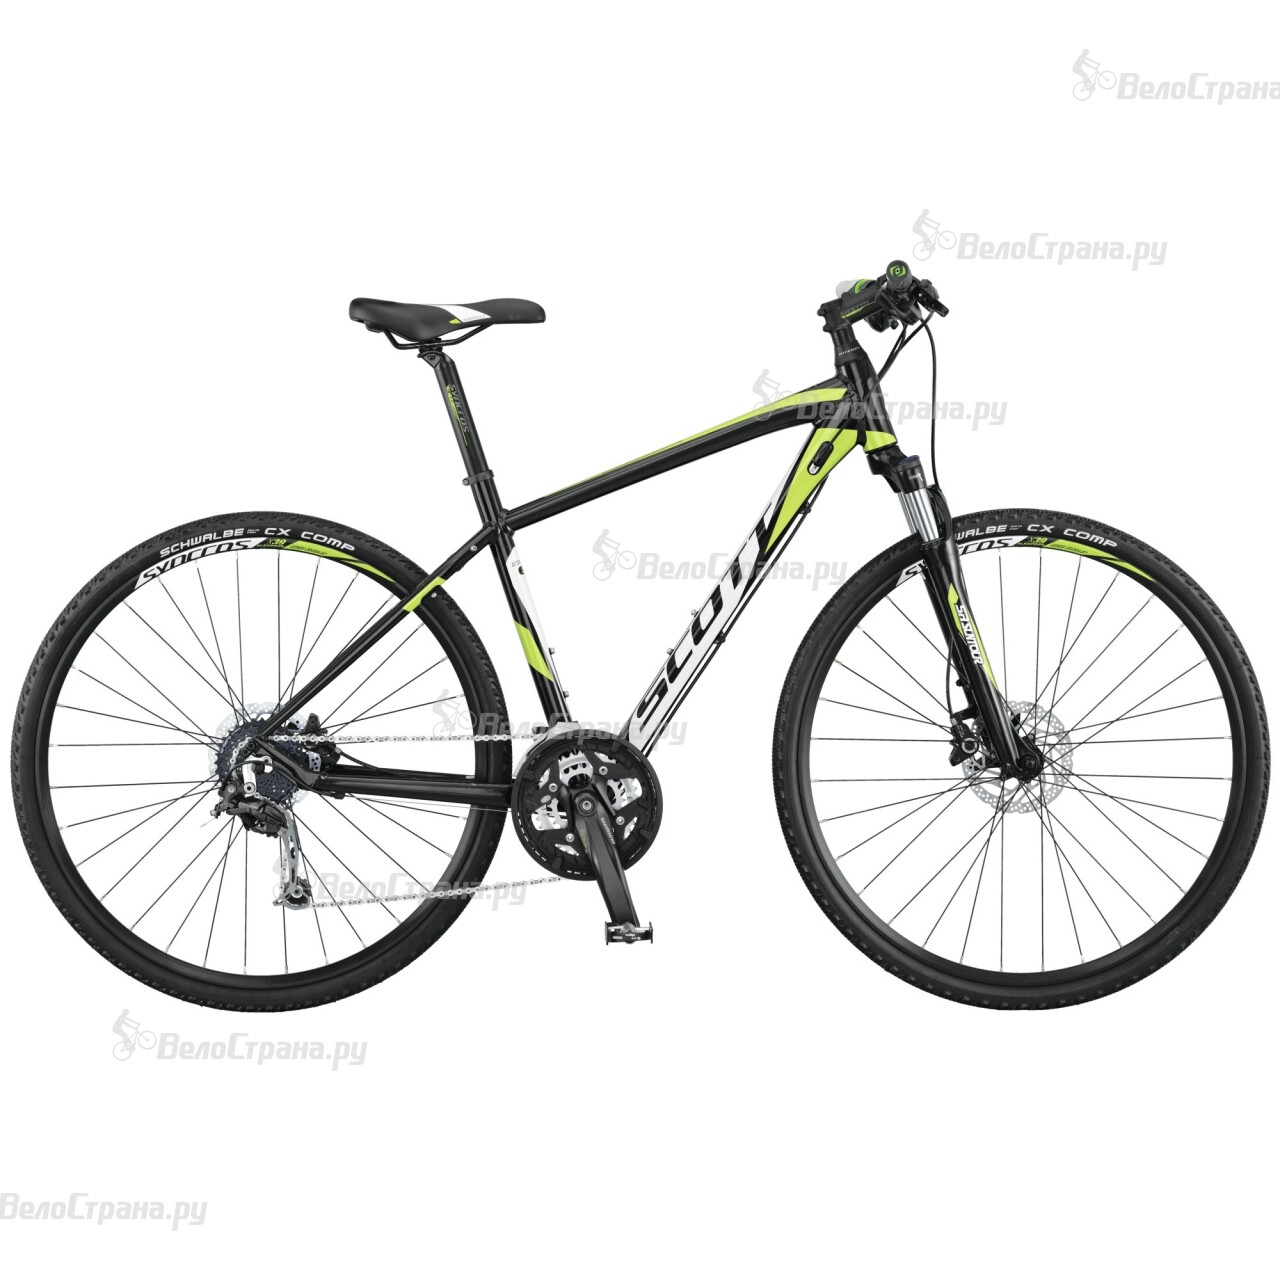 Велосипед Scott Sportster 30 Men (2015) scott joplin ноты в спб